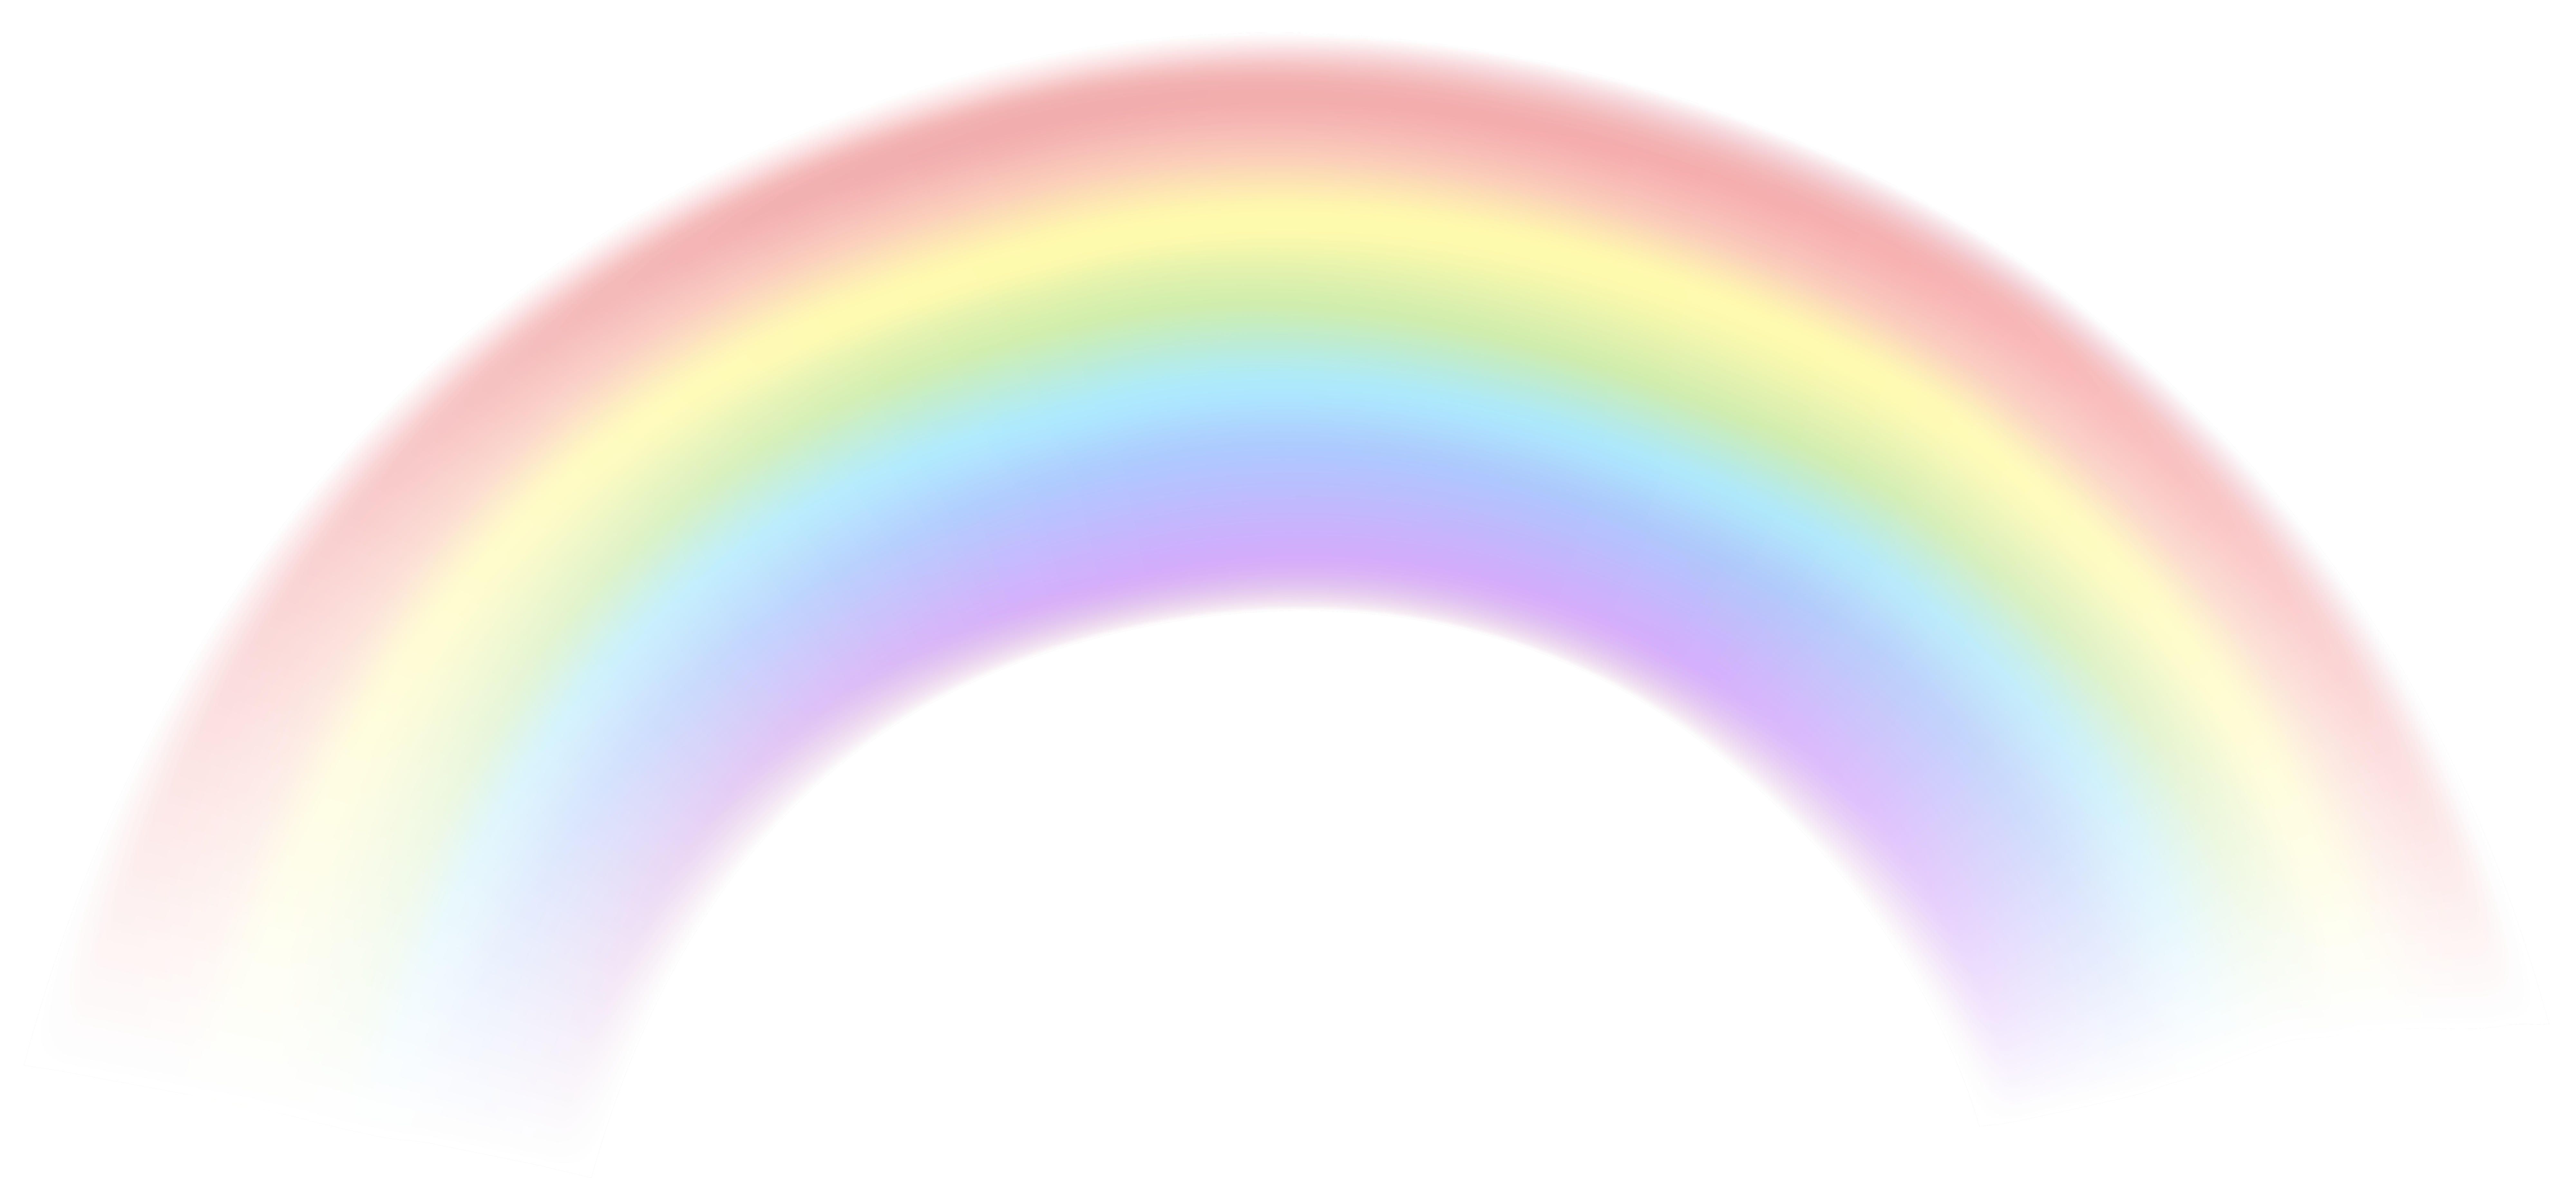 Rainbow Png Transparent Clip Art Image Gallery Yopriceville High Quality Images And Transparent Png Free Clipart Rainbow Png Clip Art Art Images